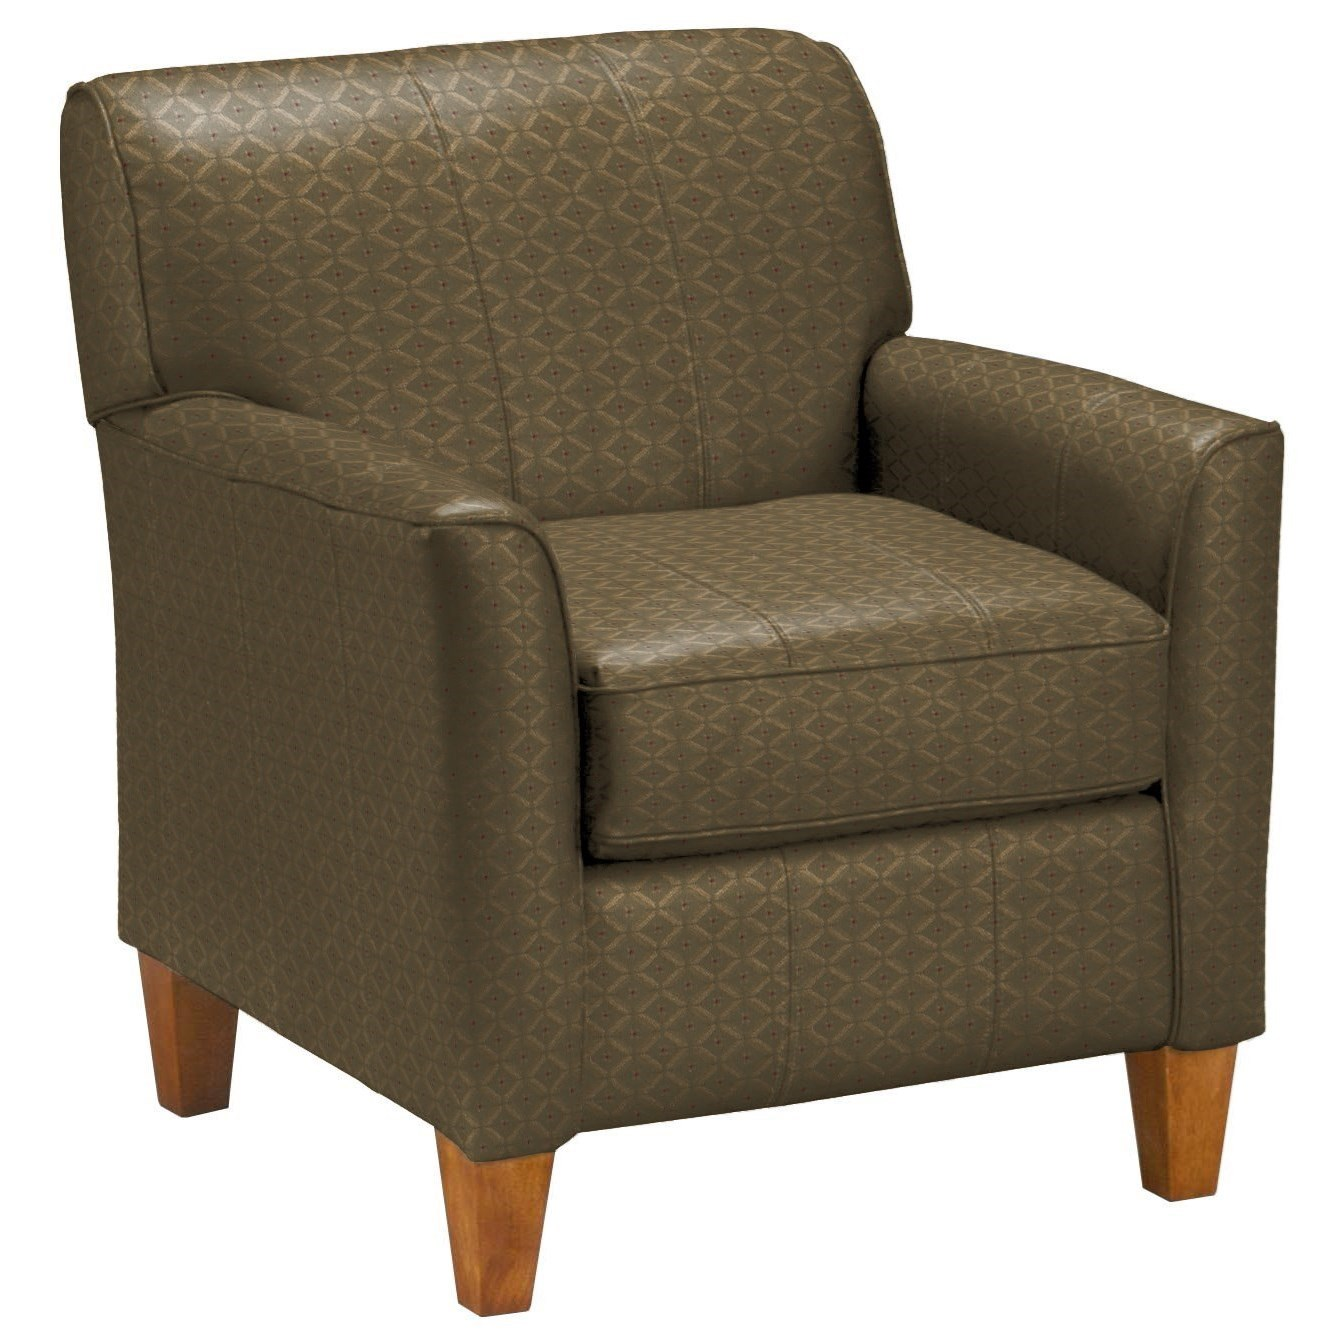 Best Home Furnishings Chairs - Club Risa Club Chair - Item Number: -1159276652-18021